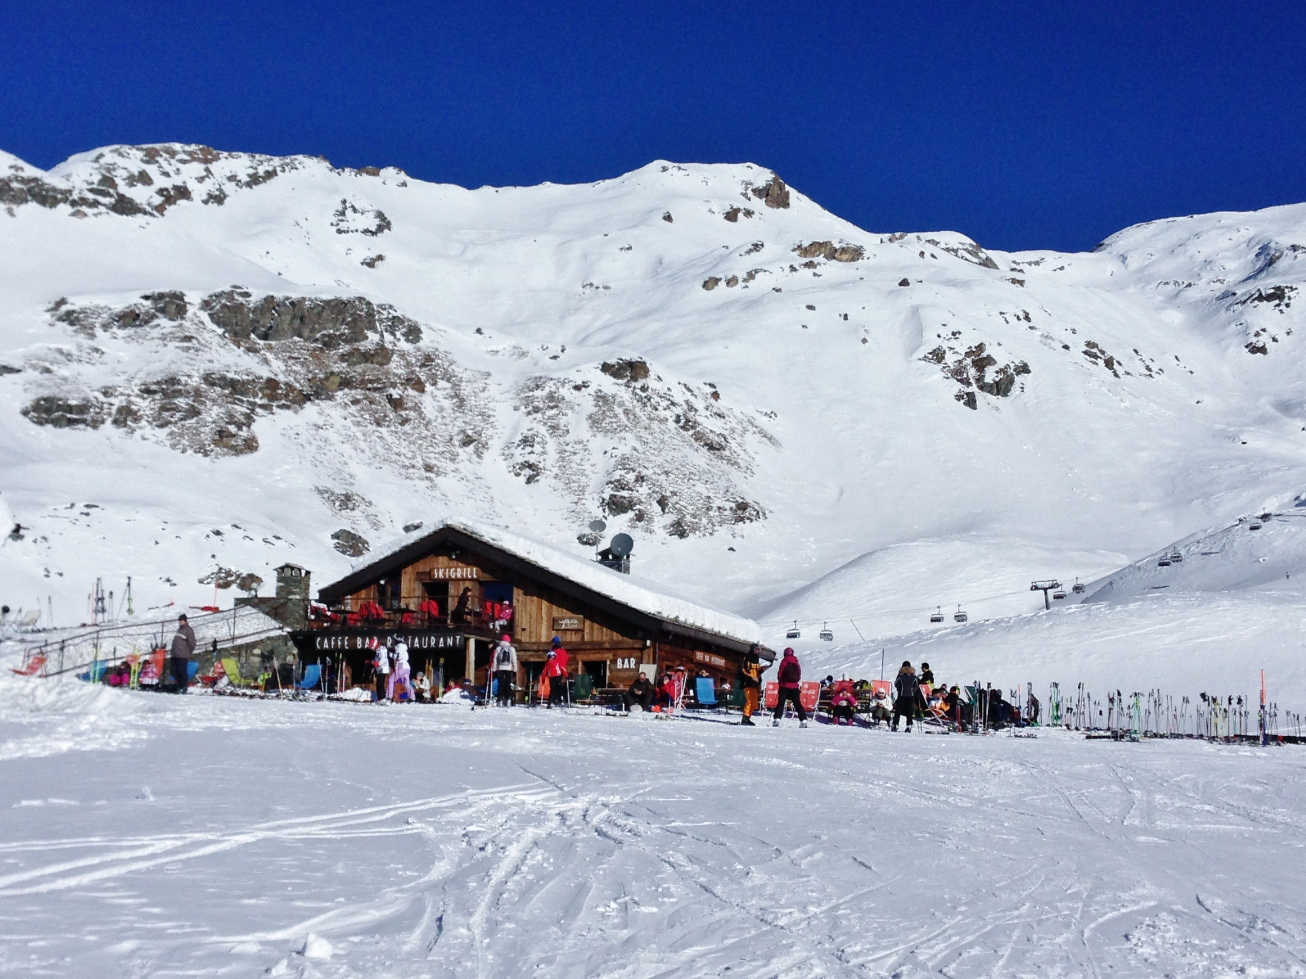 It's easy to border hop between Italy and Switzerland in the Matterhorn region and visit an Italian ski hut